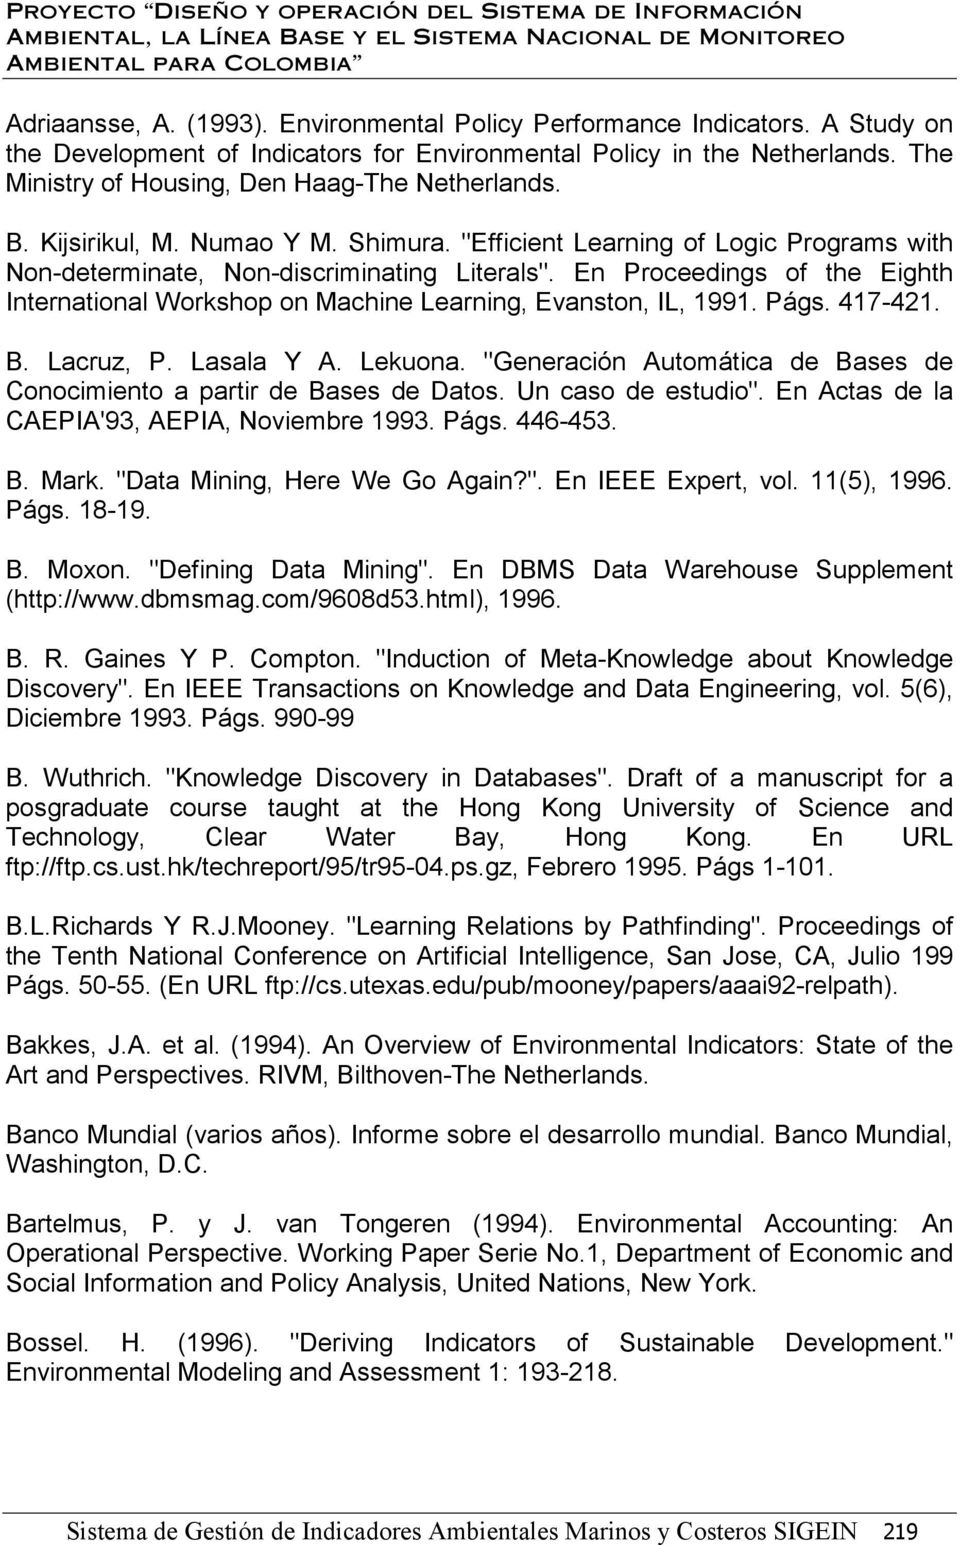 En Proceedings of the Eighth International Workshop on Machine Learning, Evanston, IL, 1991. Págs. 417-421. B. Lacruz, P. Lasala Y A. Lekuona.